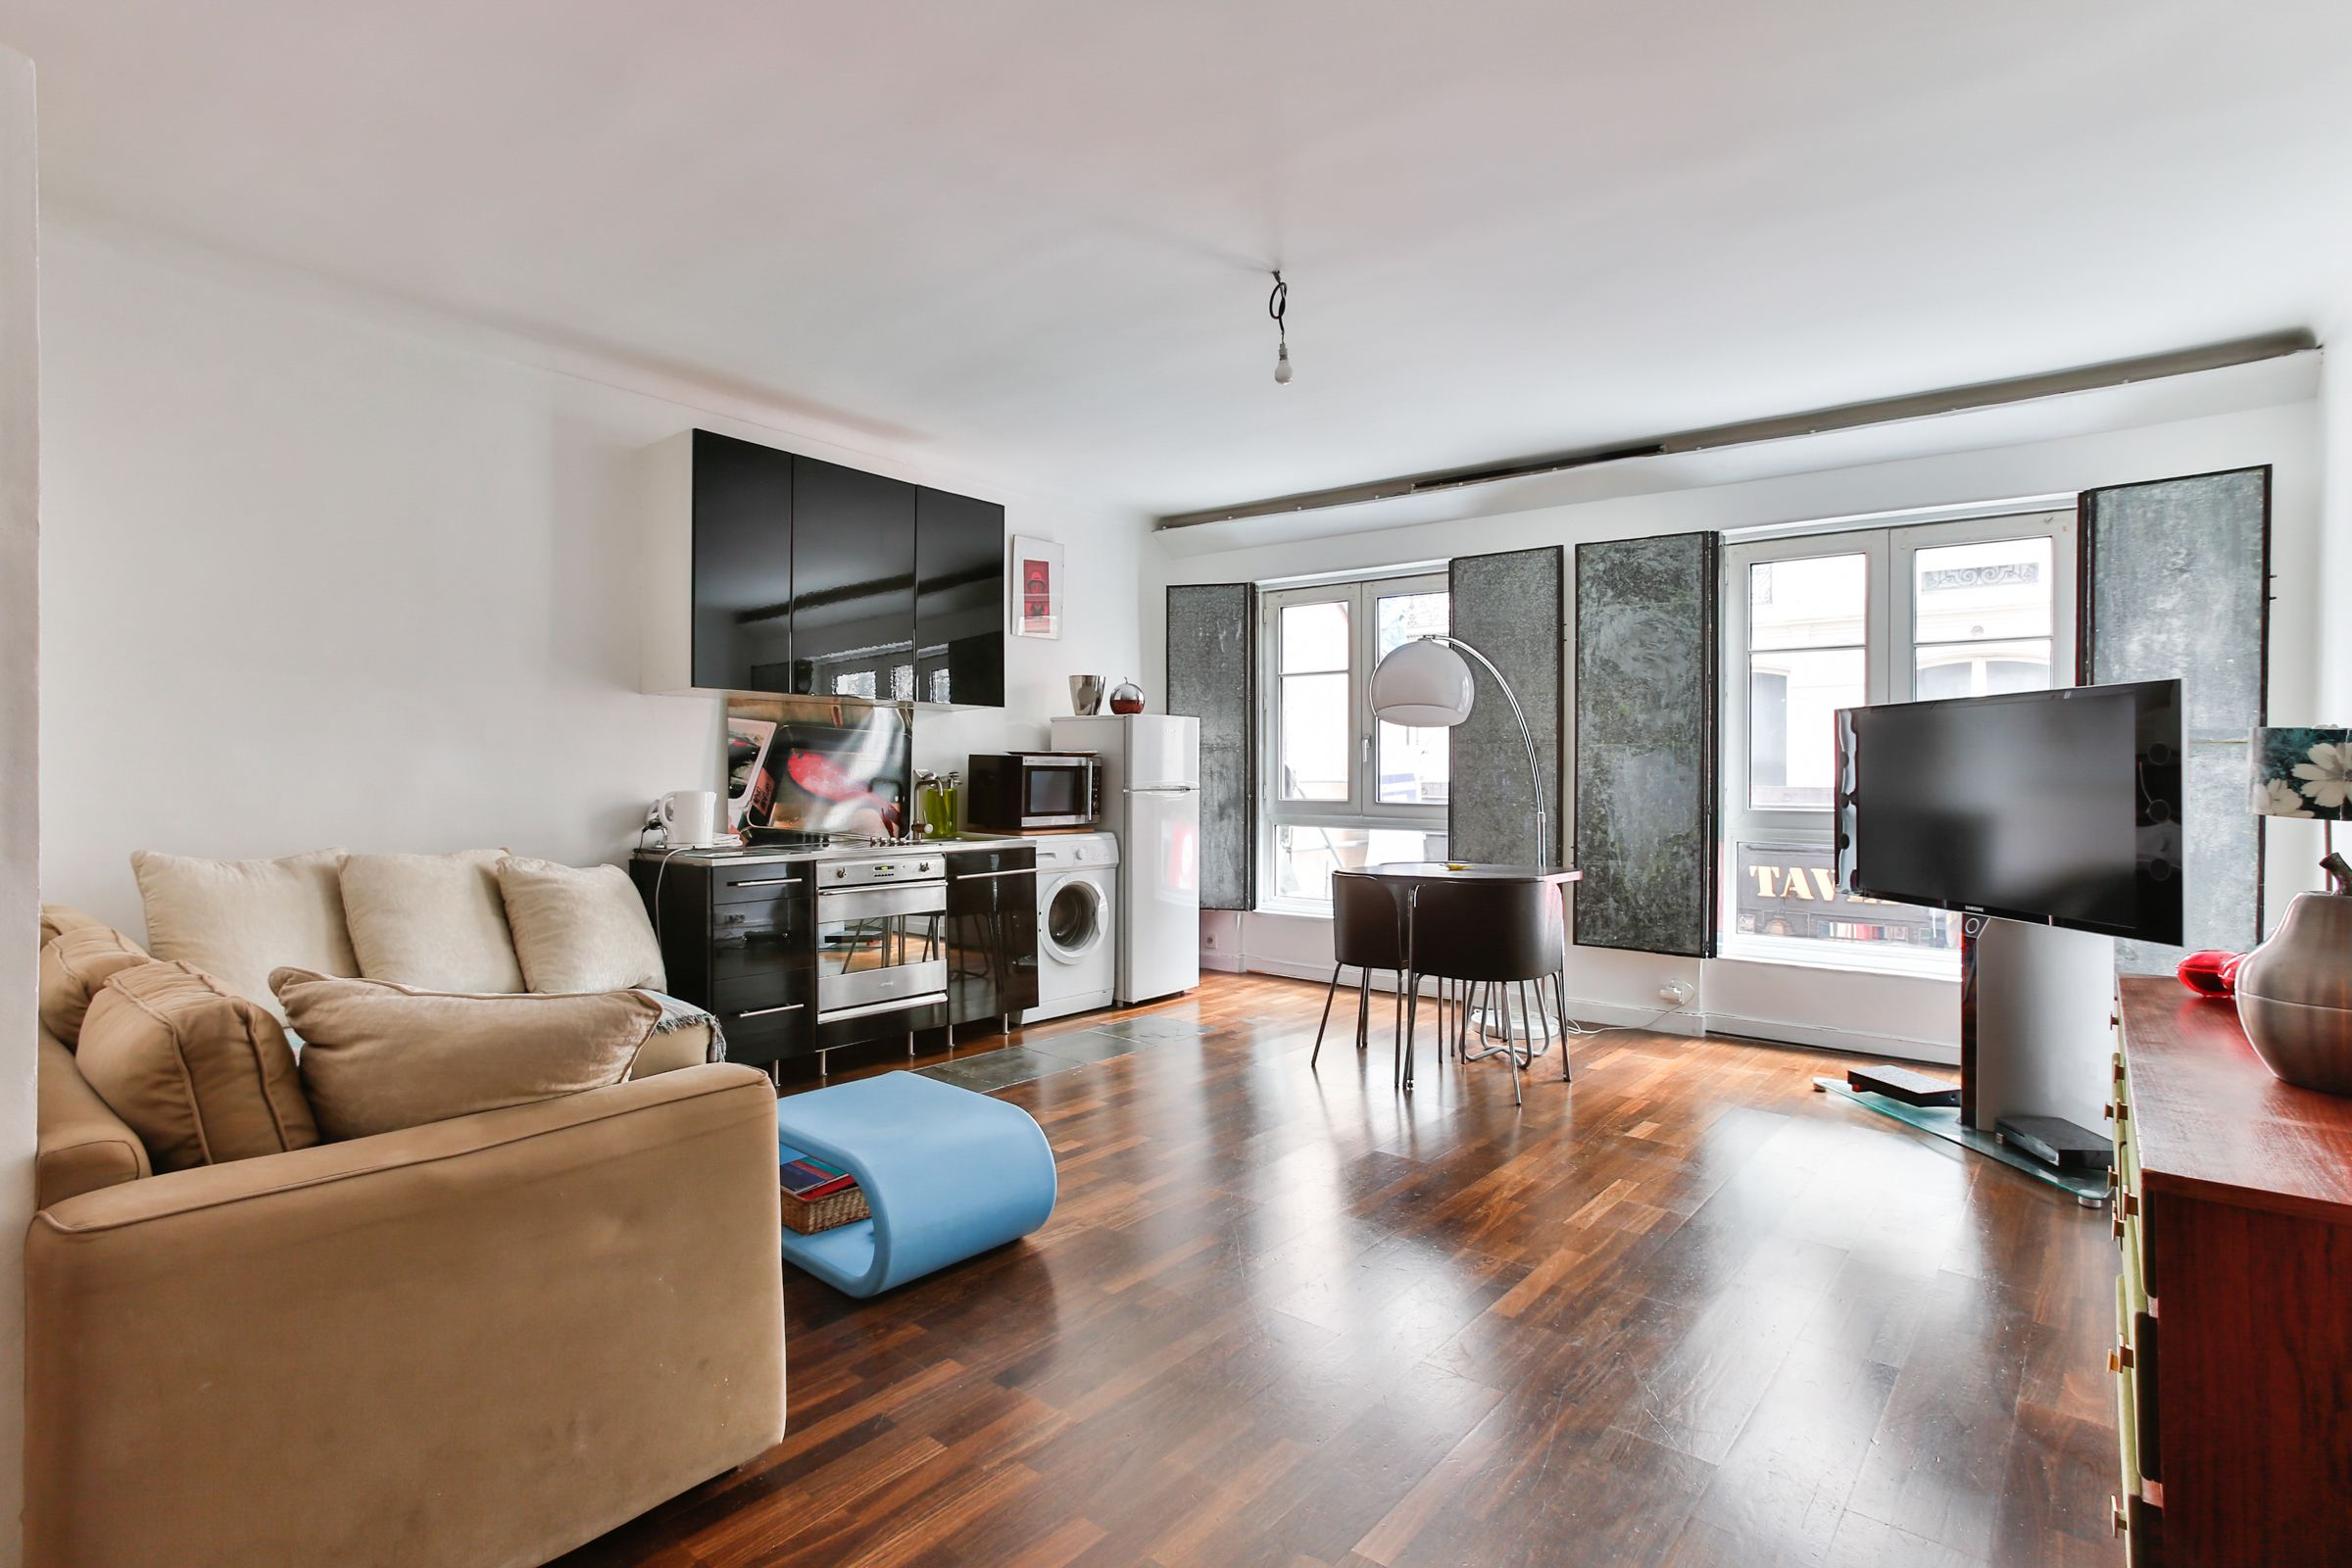 Property For Sale at Paris 1st - Châtelet. Apartment. Refurbished.